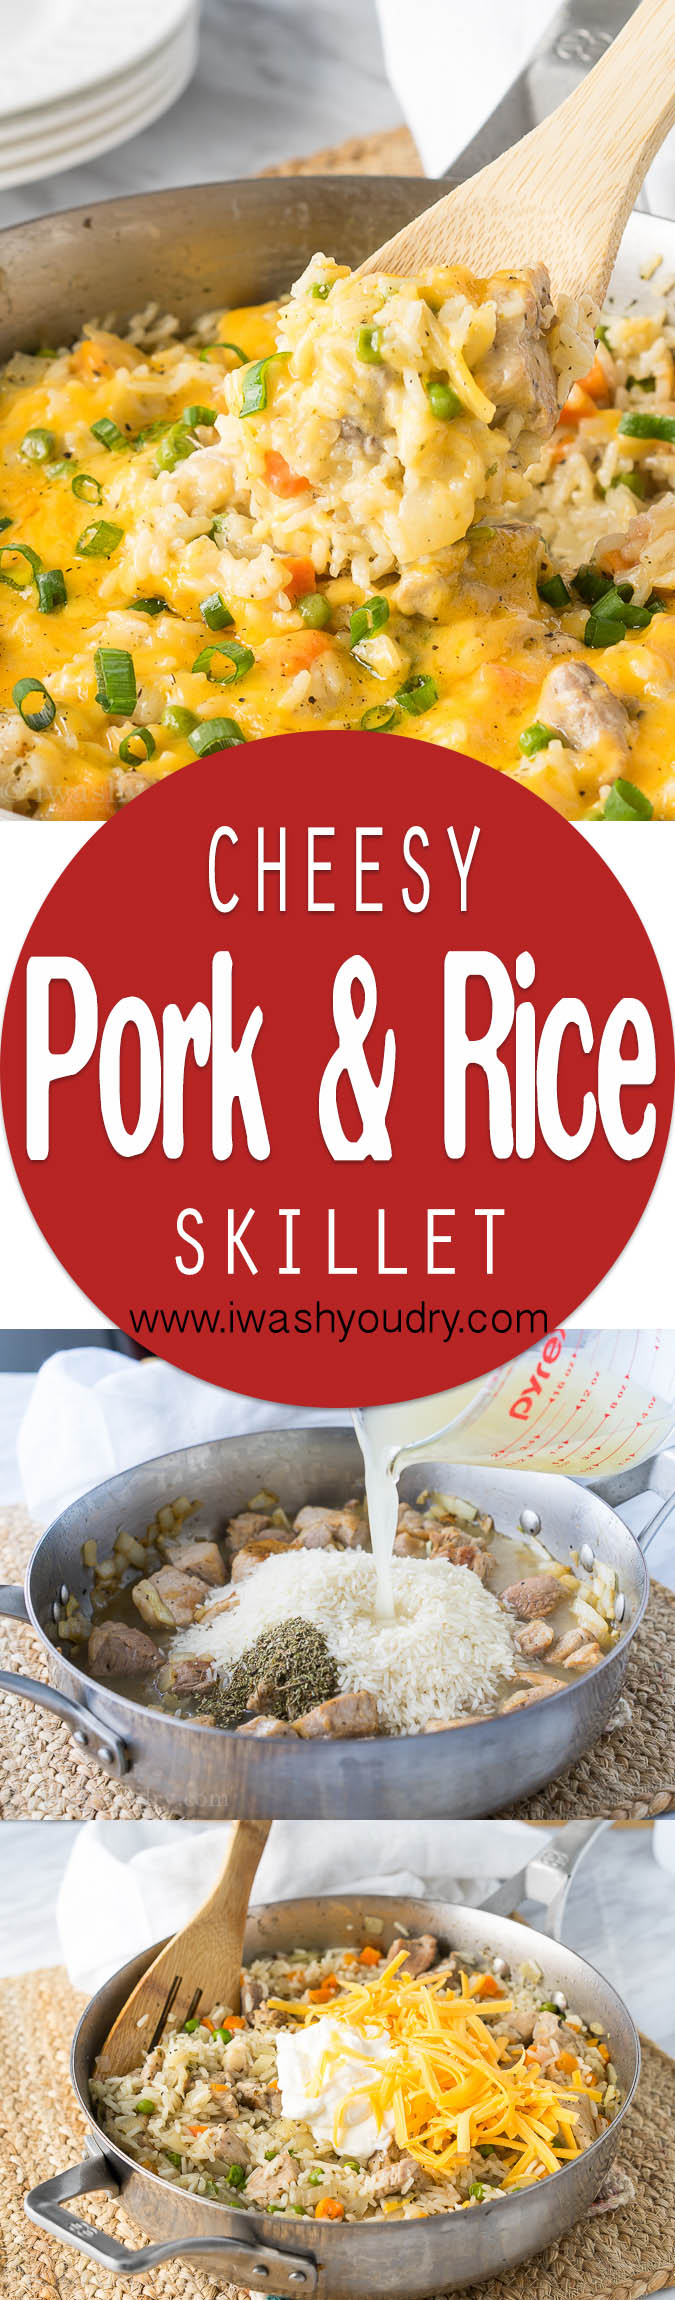 This Cheesy Pork and Rice Skillet is a complete meal all in one skillet!